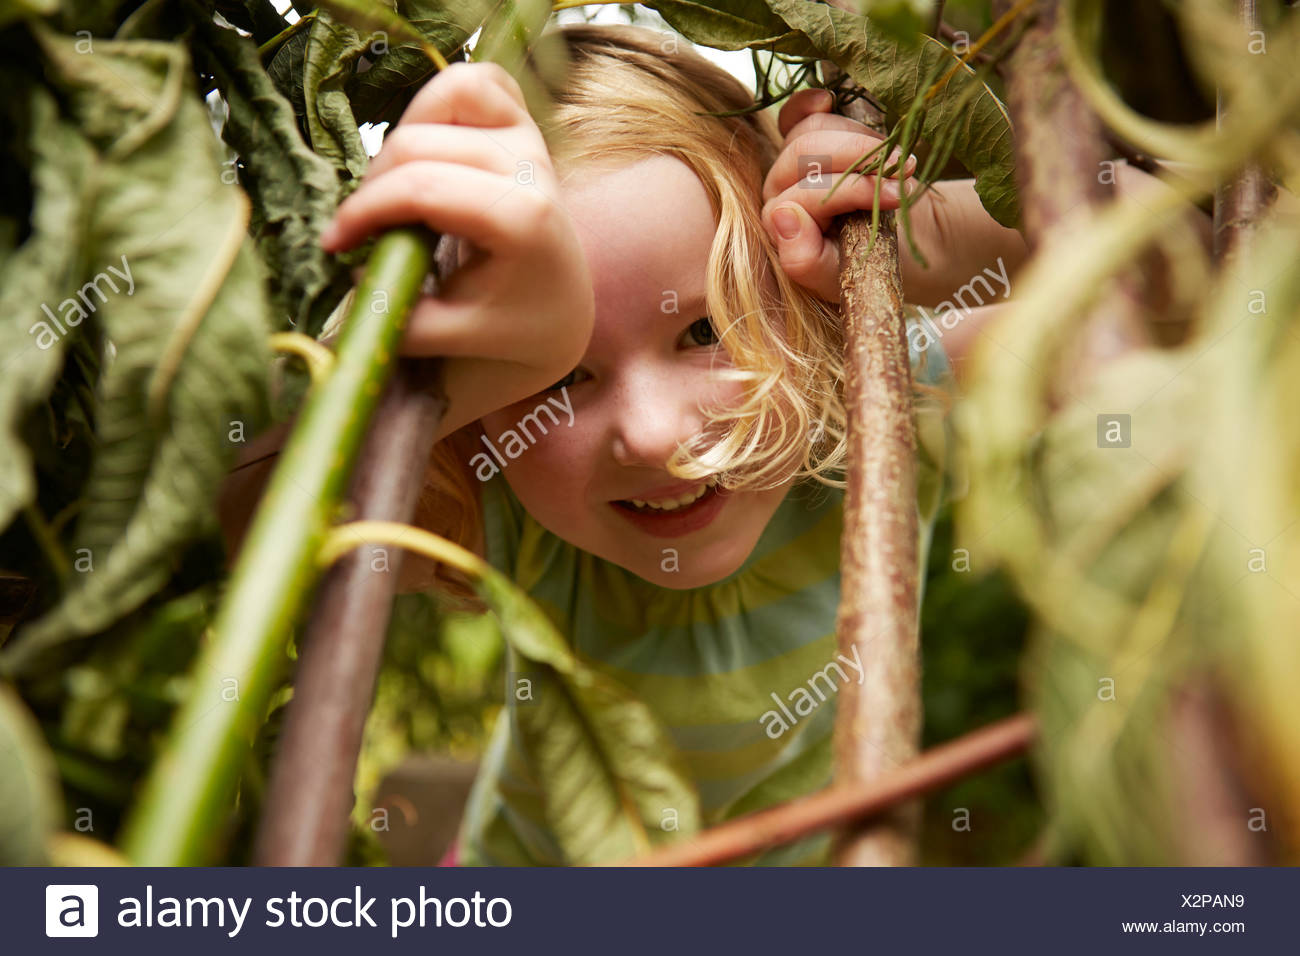 Close up portrait of girl hiding in bushes - Stock Image